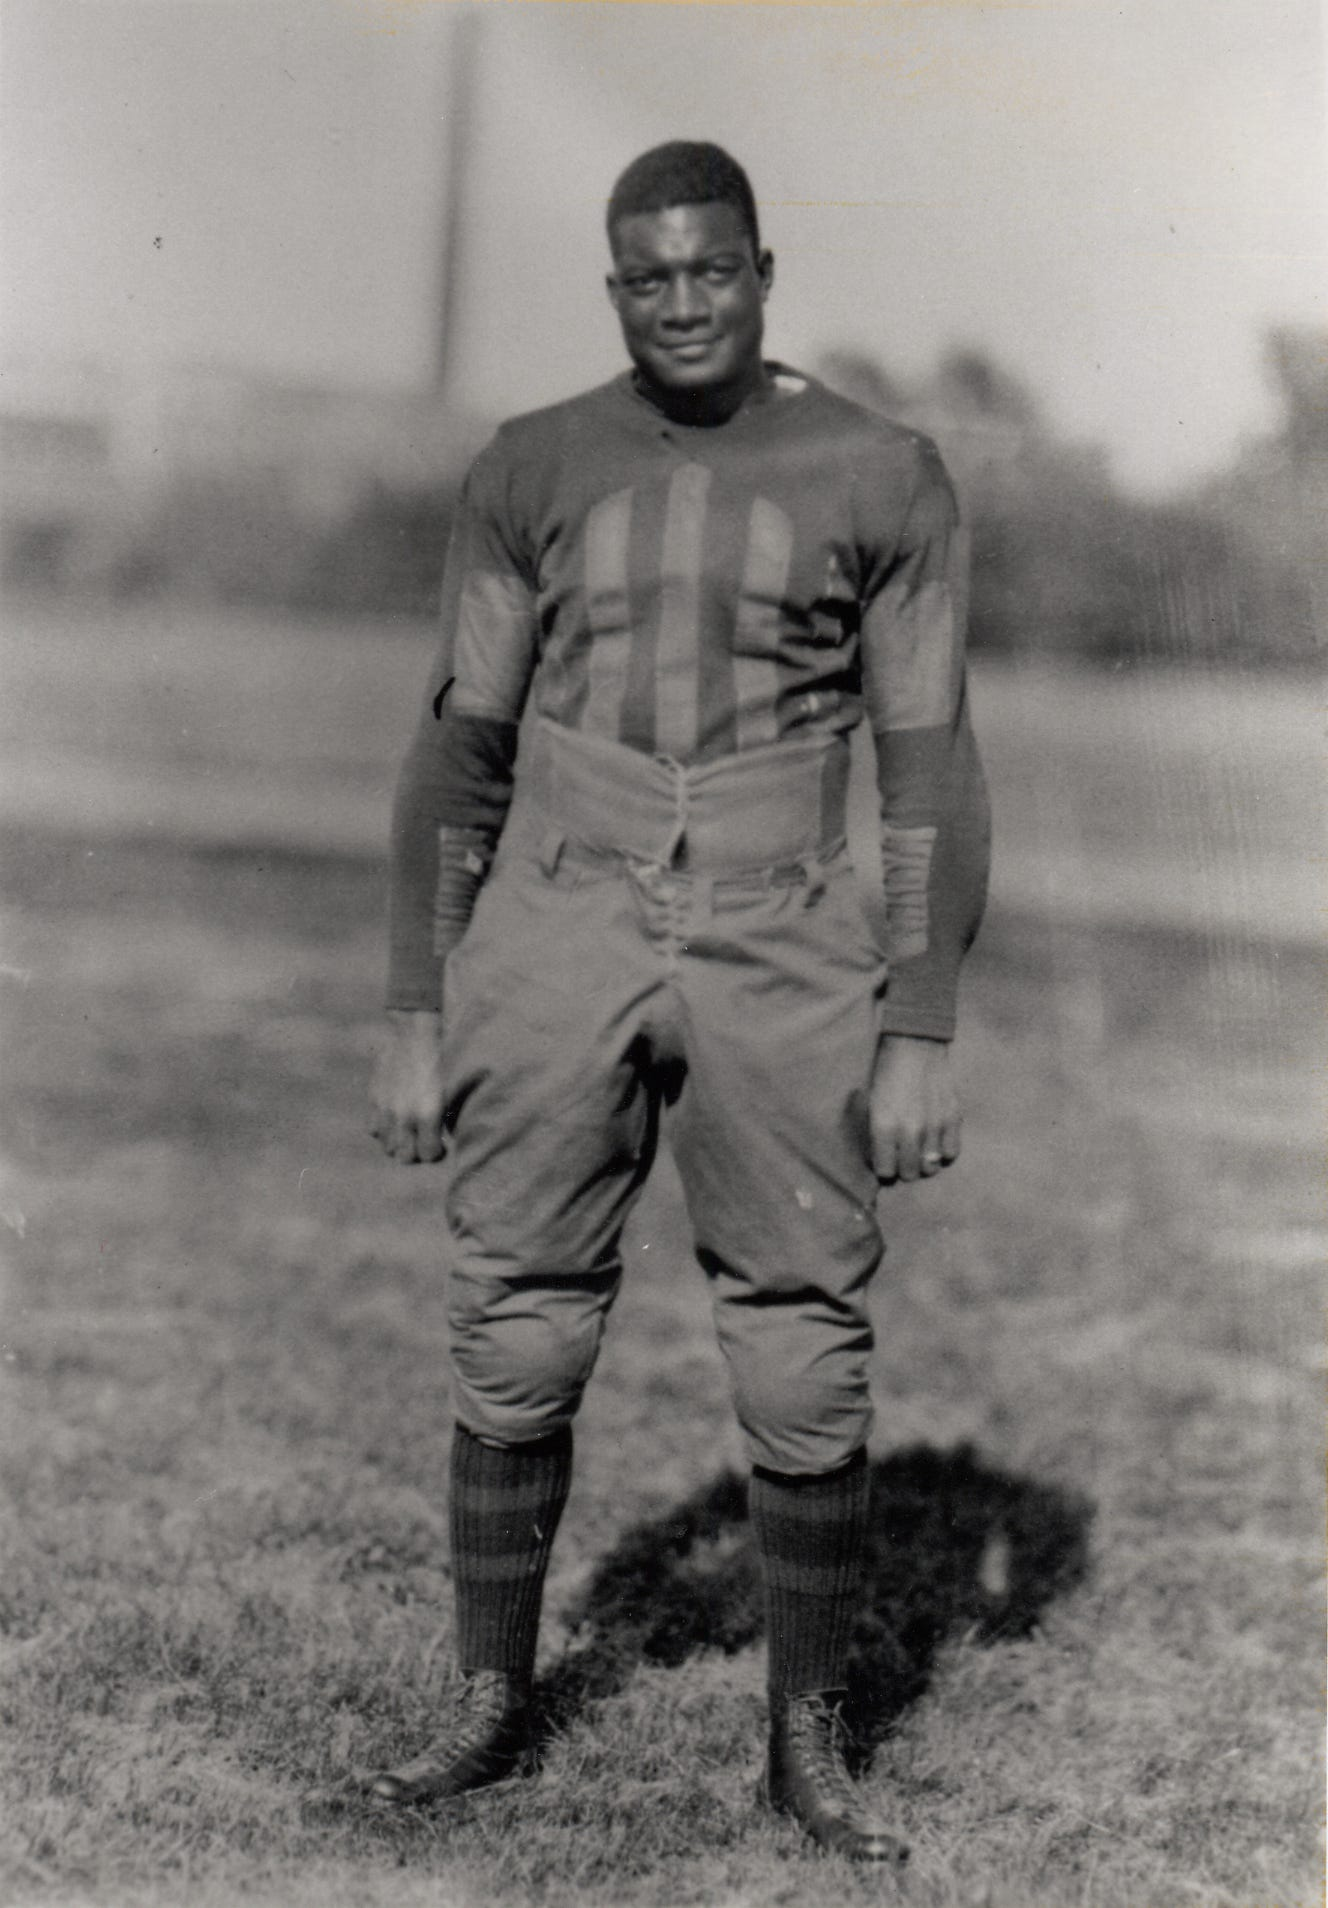 Jack Trice, shown here in a school photo.